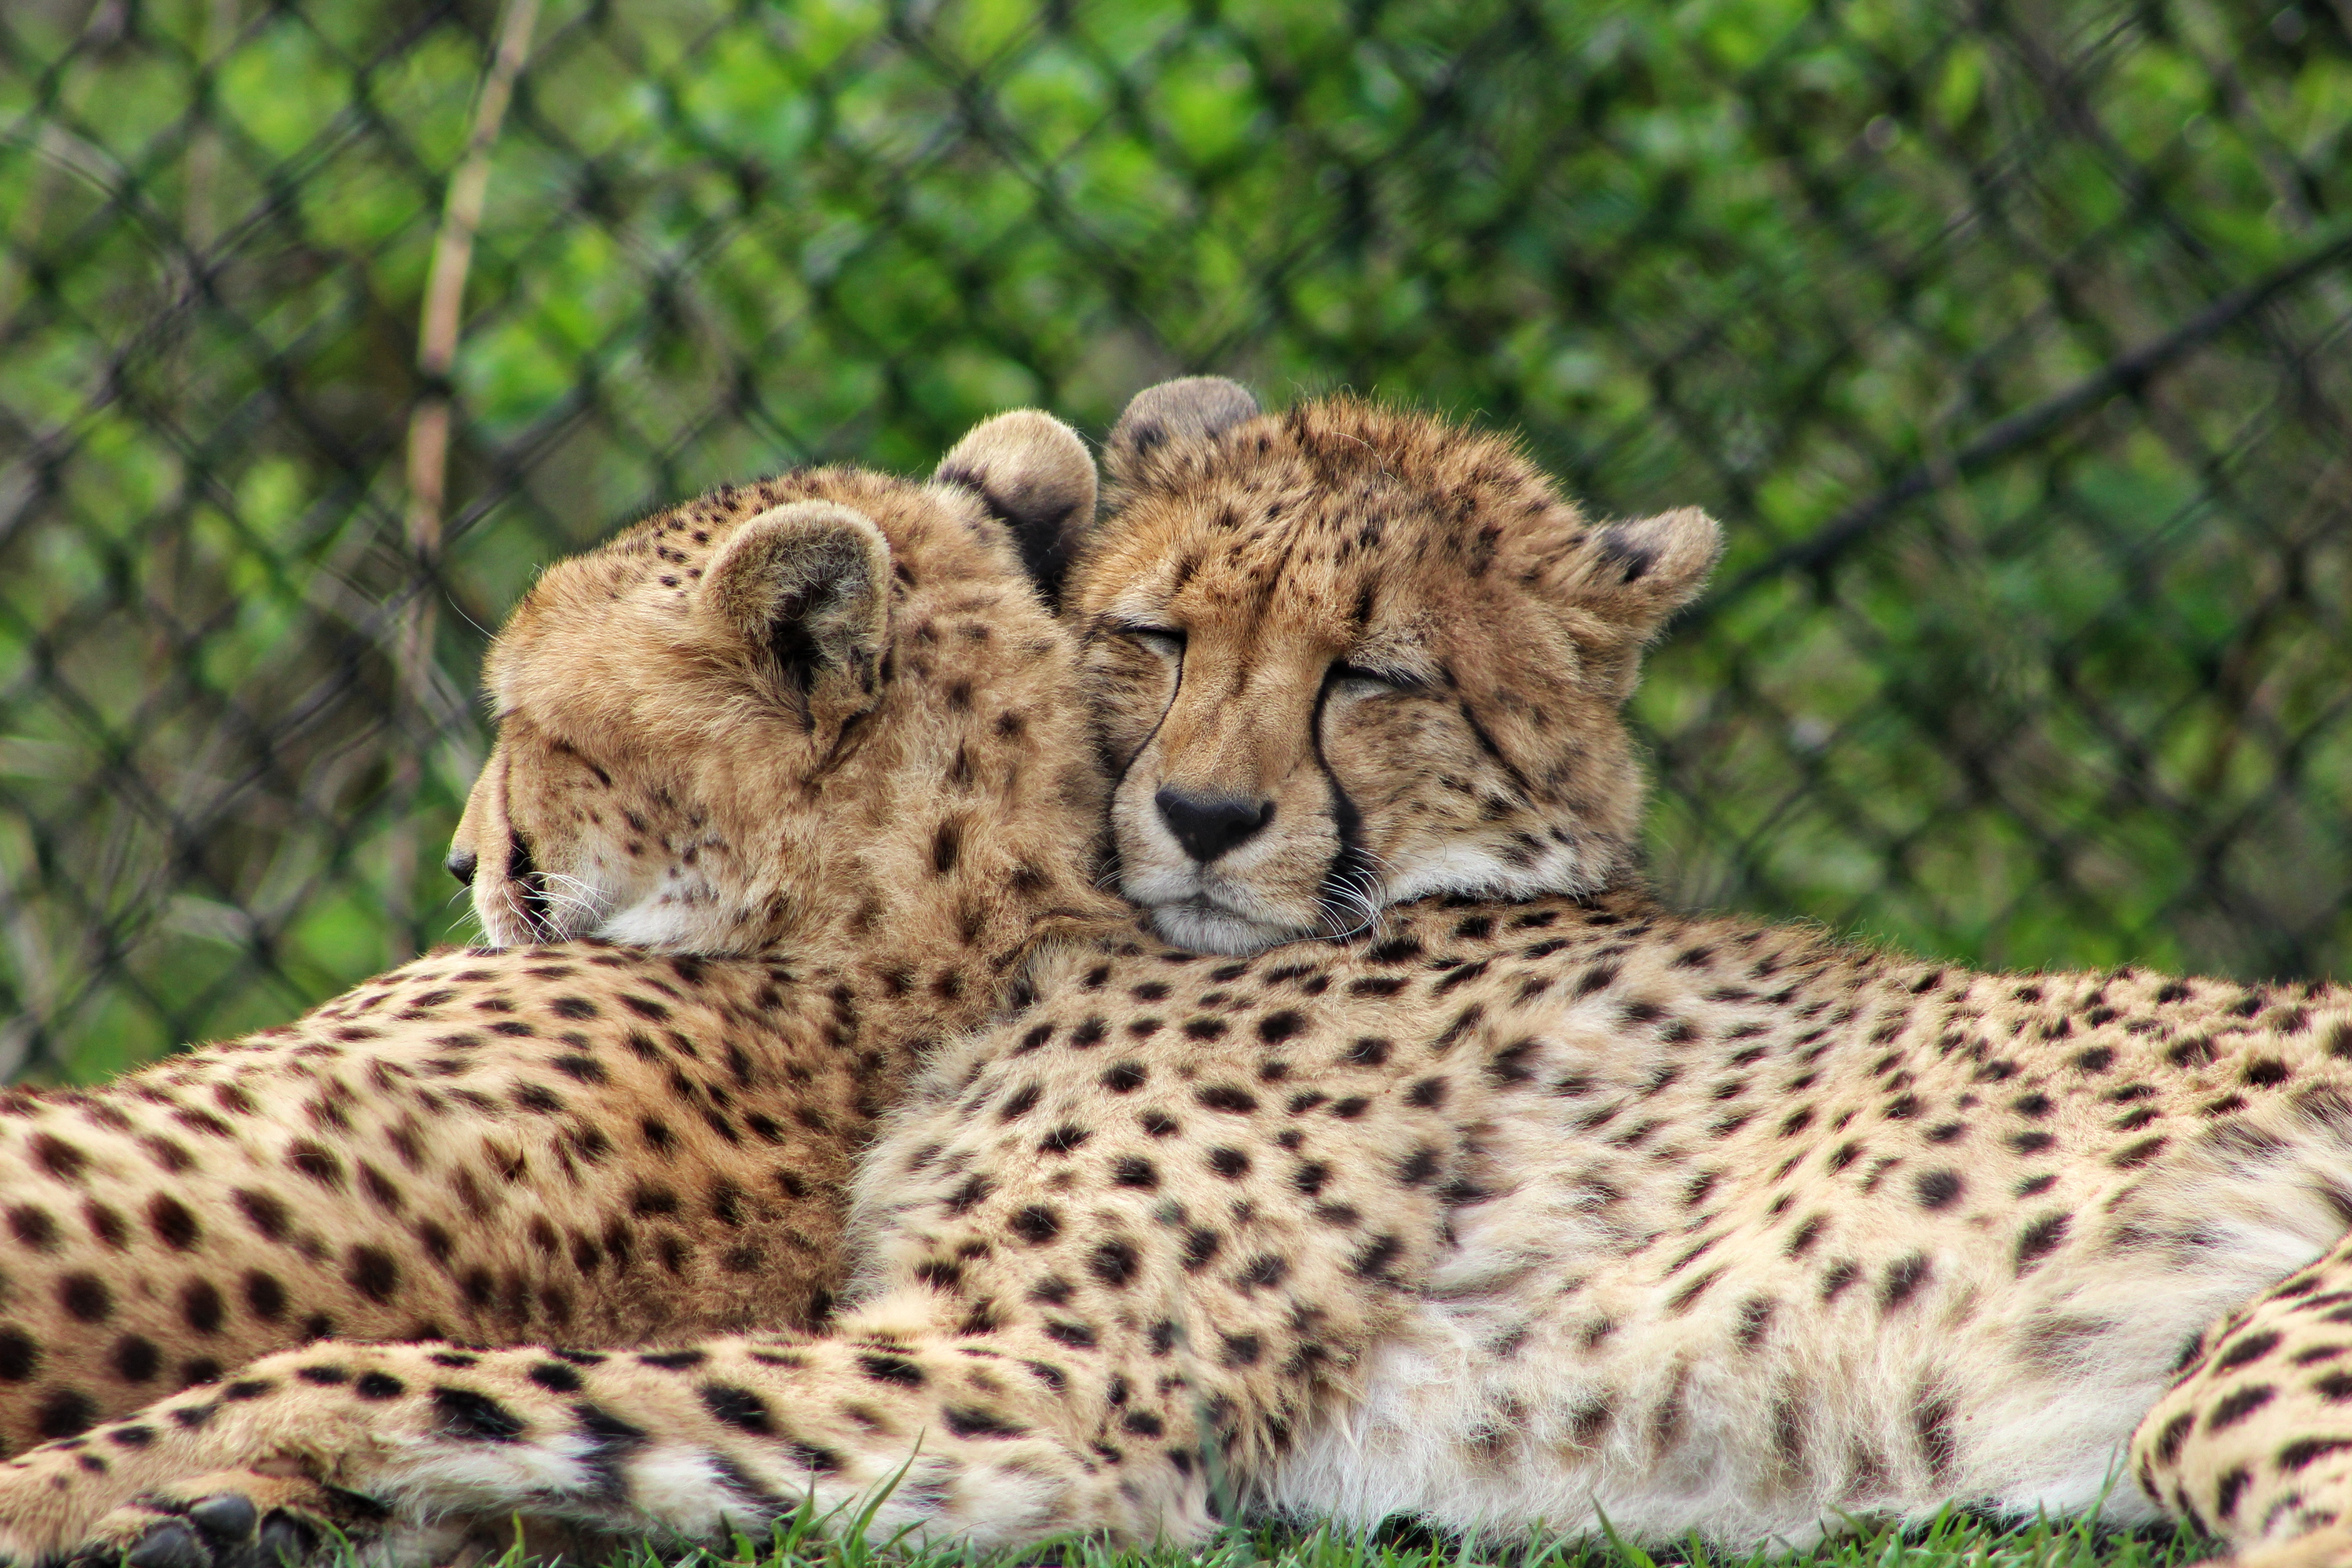 Two heads are better than one, Animal, Cat, Cat images, Cheetah, HQ Photo